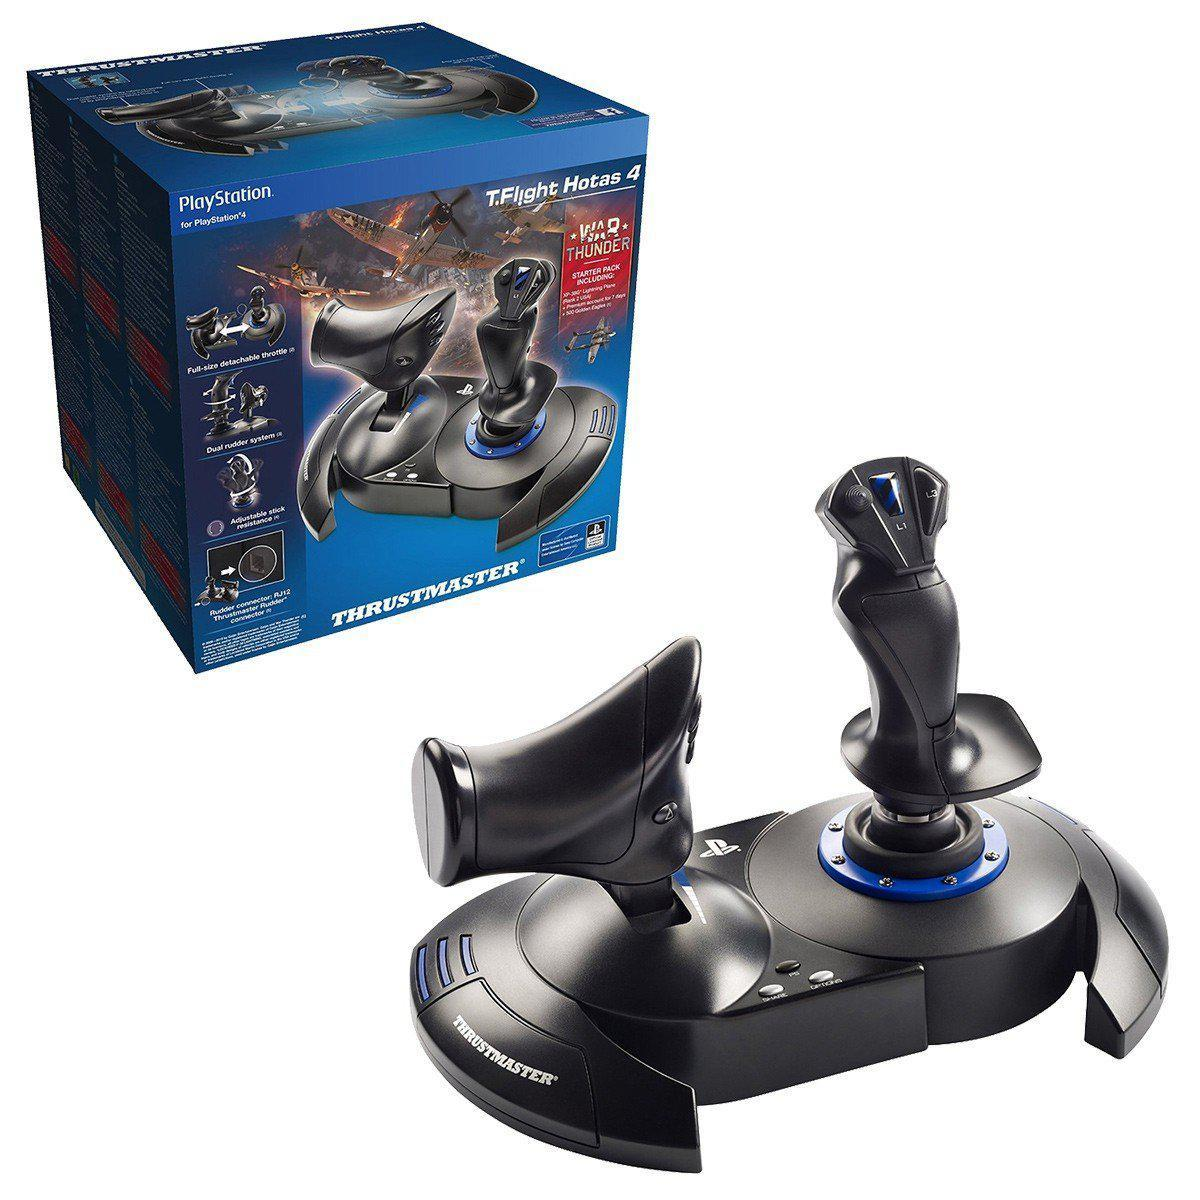 Thrustmaster T.Flight HOTAS 4 Joystick For PC & PS4 - Cubox Australia